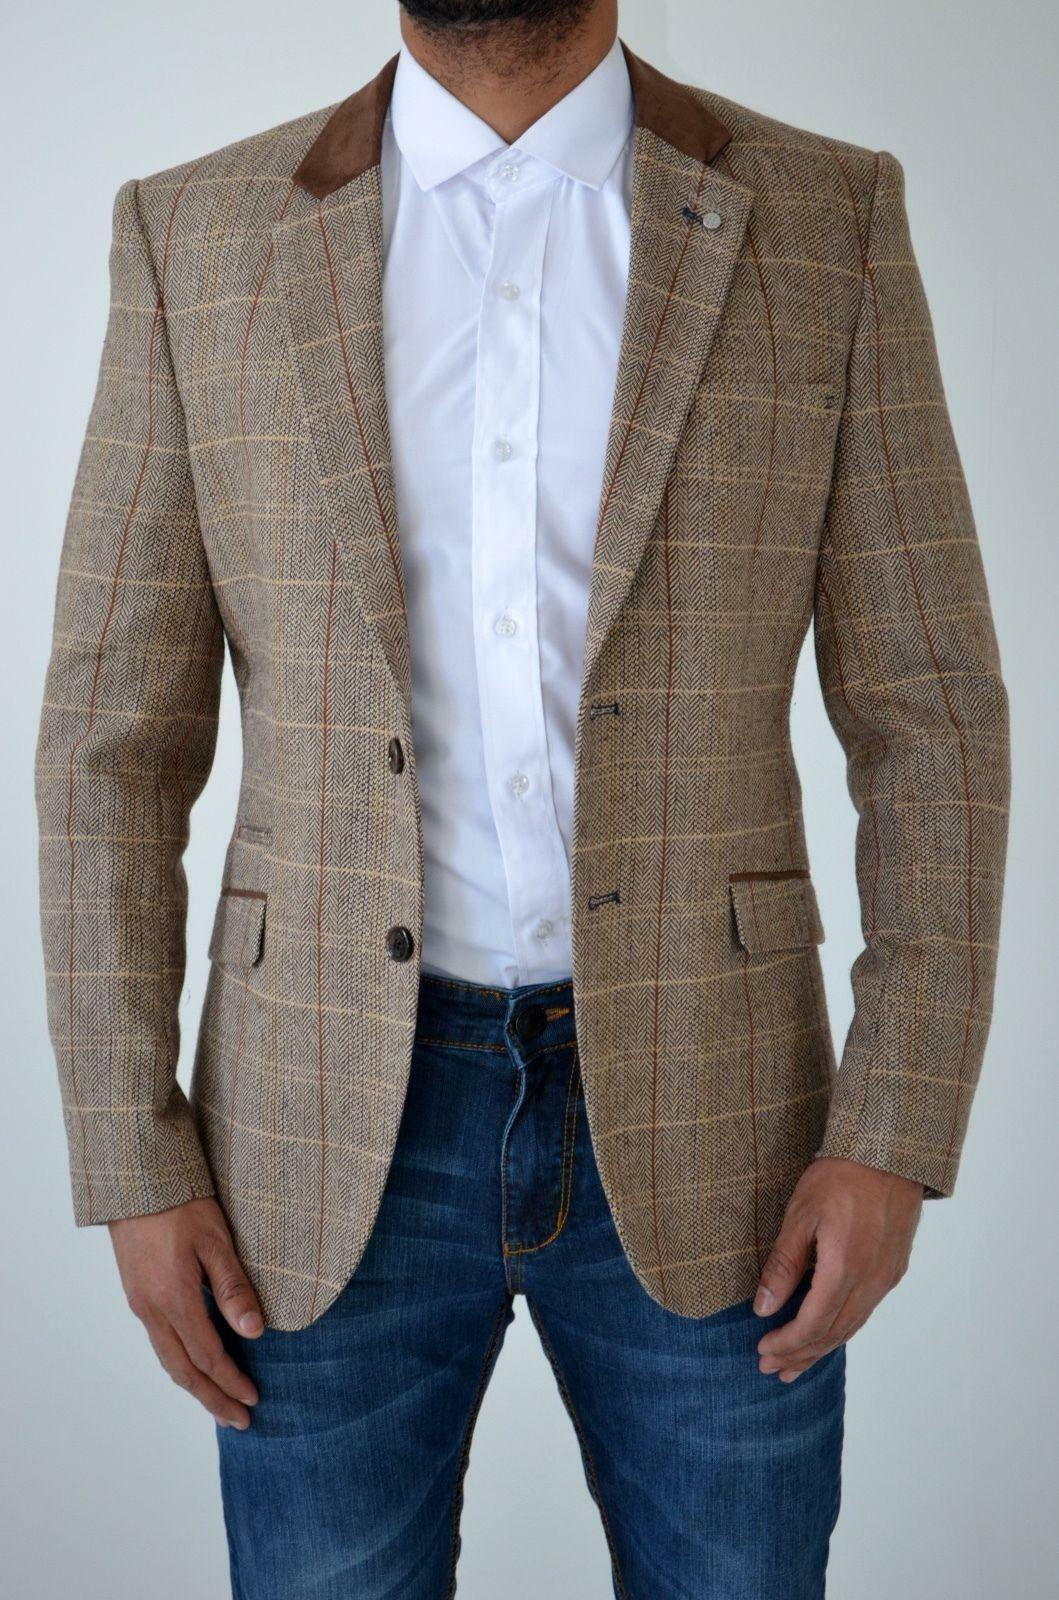 CAVANI Homme Tweed Carreaux à Chevrons à Carreaux Tweed Vintage TailoRouge  Blazer Jacket Costume 76c322